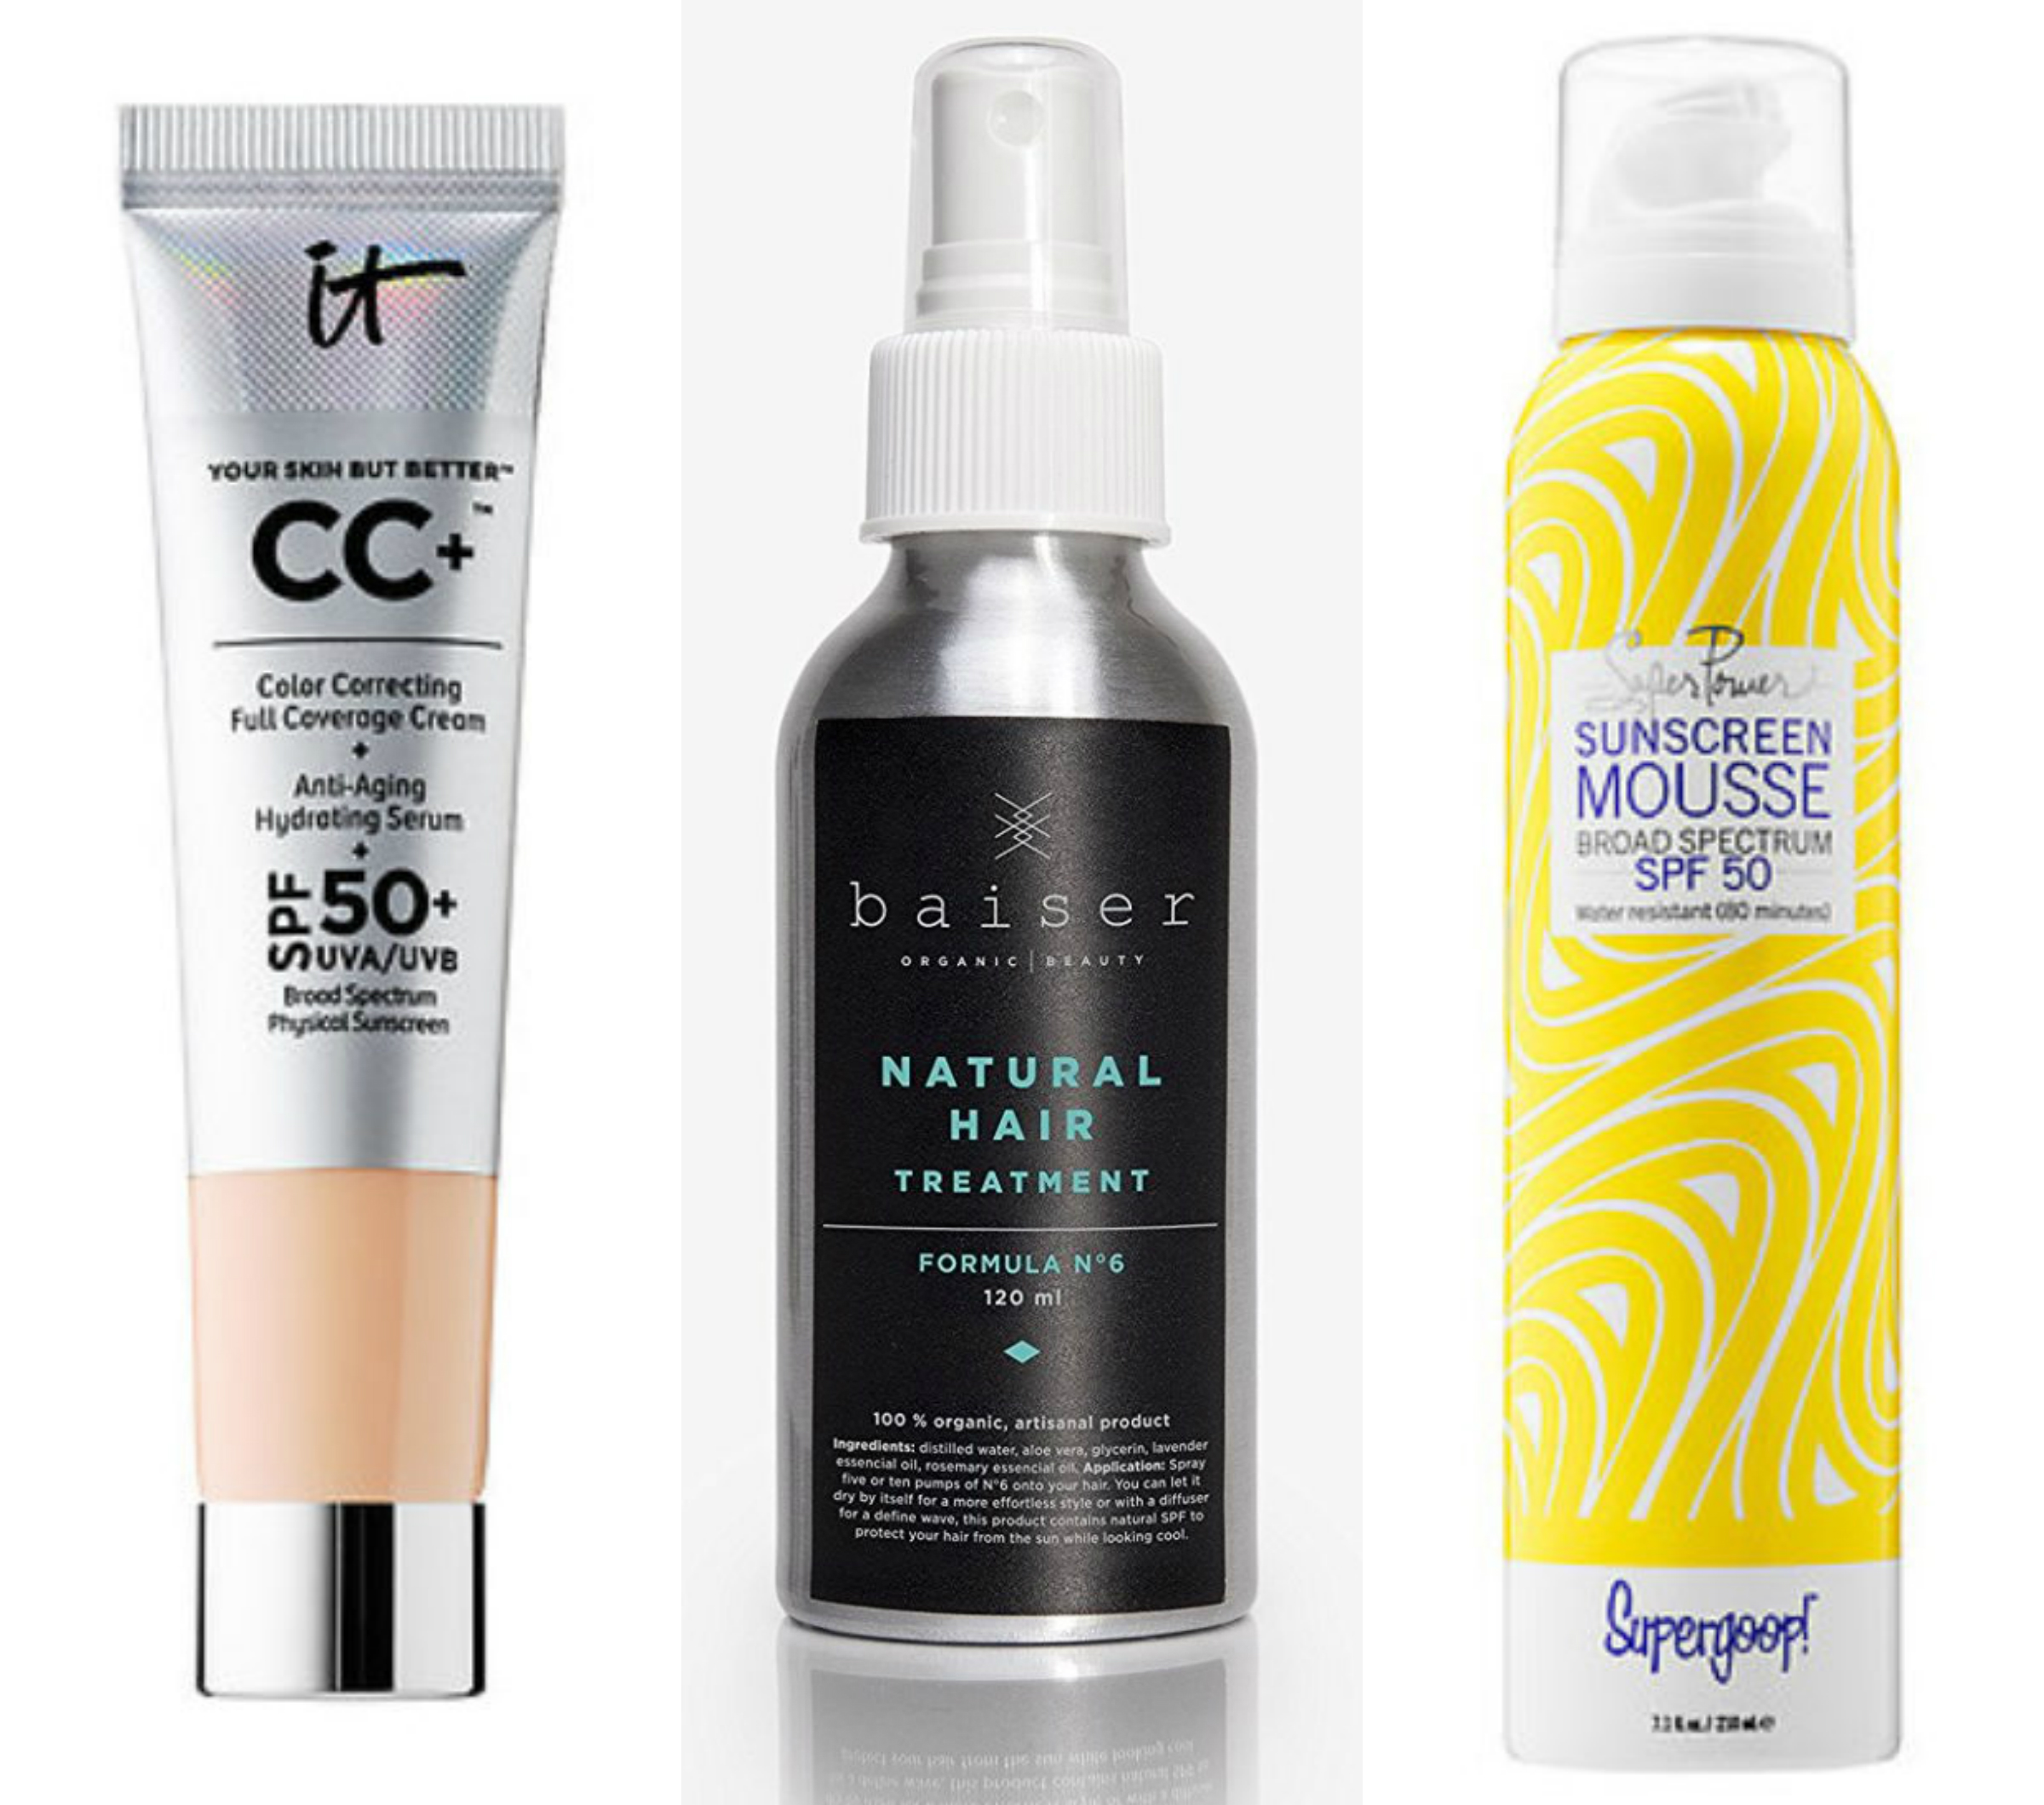 From SPF hairspray to tinted moisturizer, here are 20 items to pack for your ultimate Coachella beauty survival kit